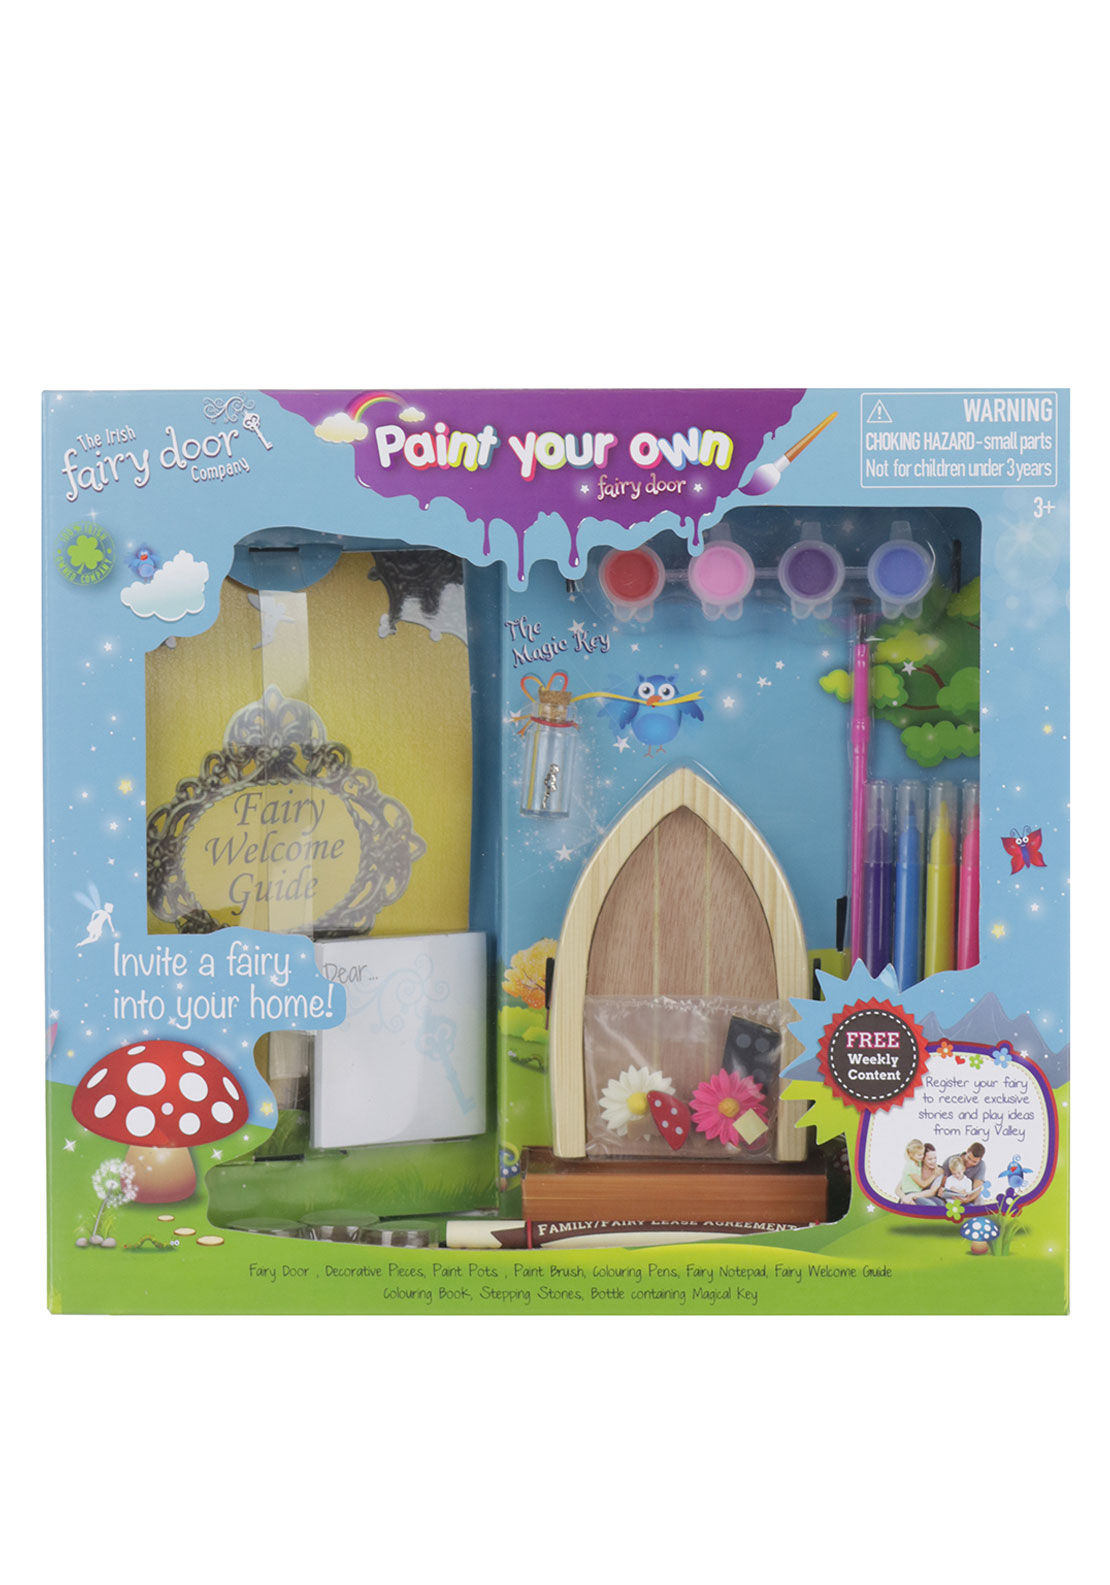 The irish fairy door company paint your own door mcelhinneys for My irish fairy door